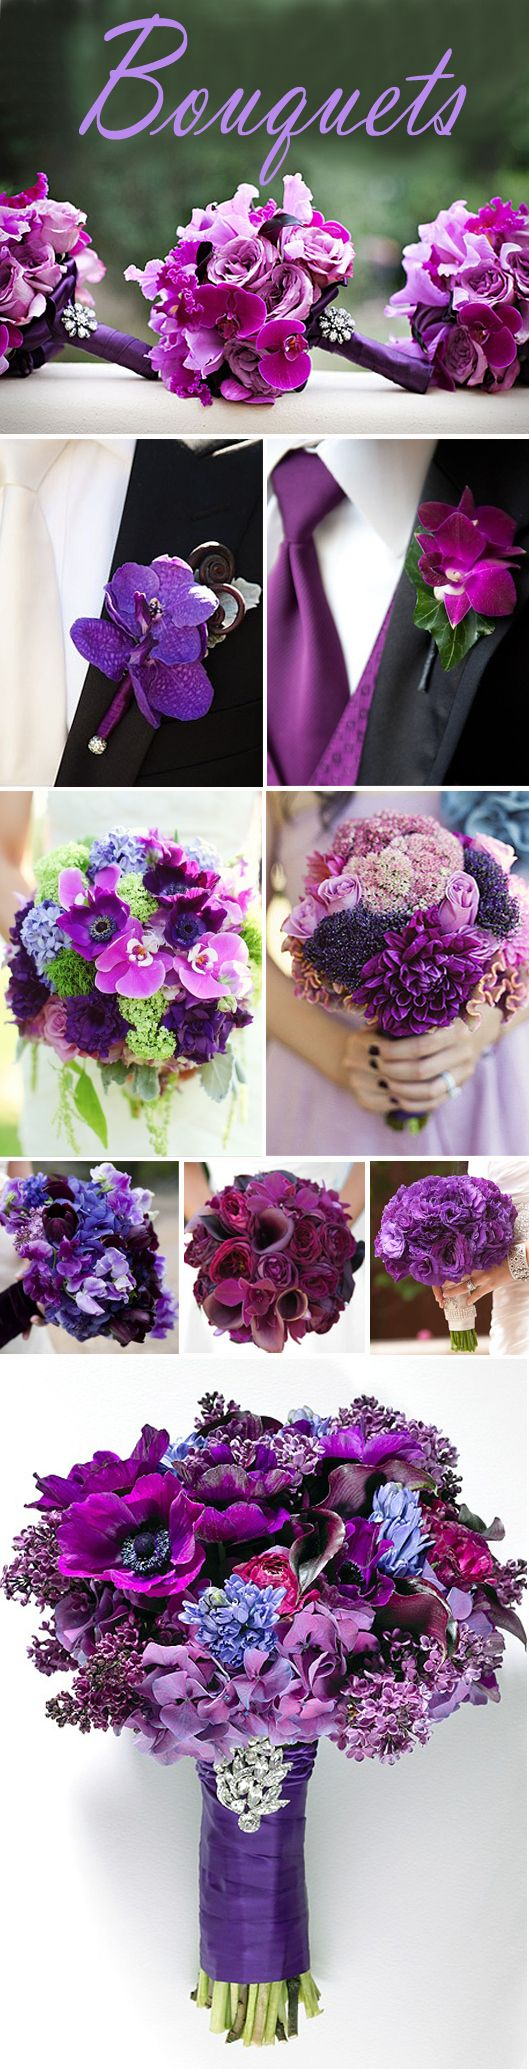 Wedding Bouquets: Your Wedding Color – Purple « Exclusively Weddings Blog | Wedding Planning Tips and More